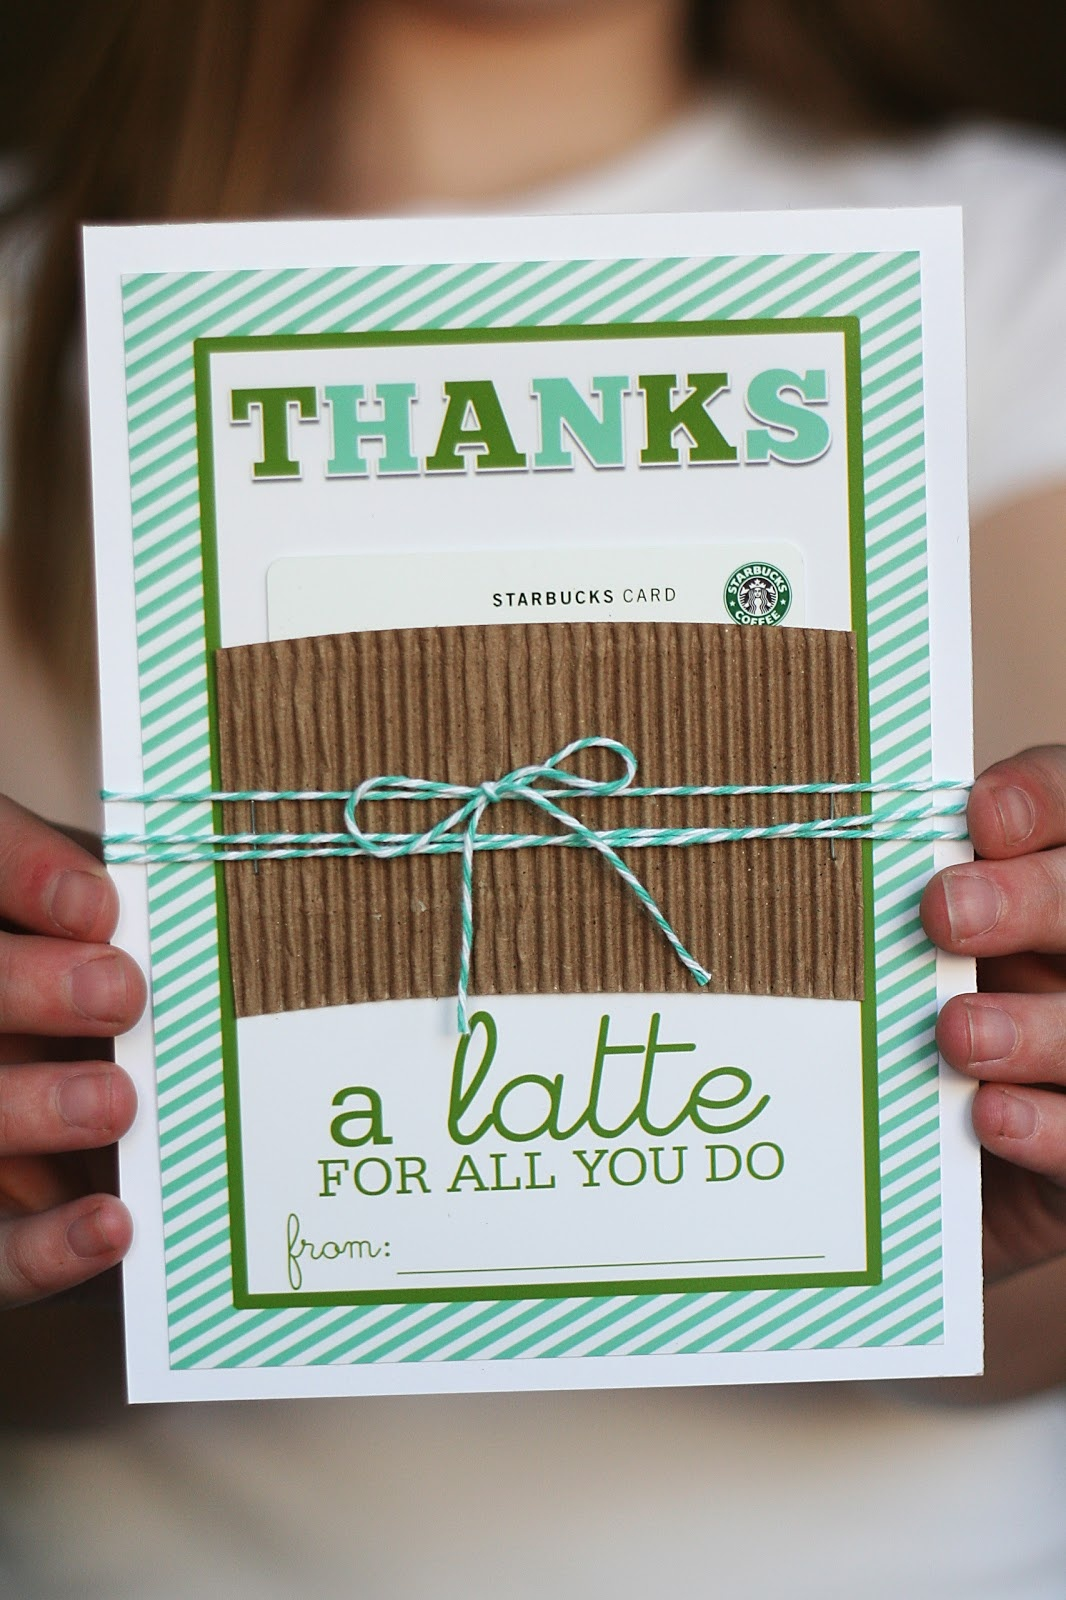 Thanks A Latte Card You Can Print For Free | Eighteen25 - Thanks A Latte Free Printable Card